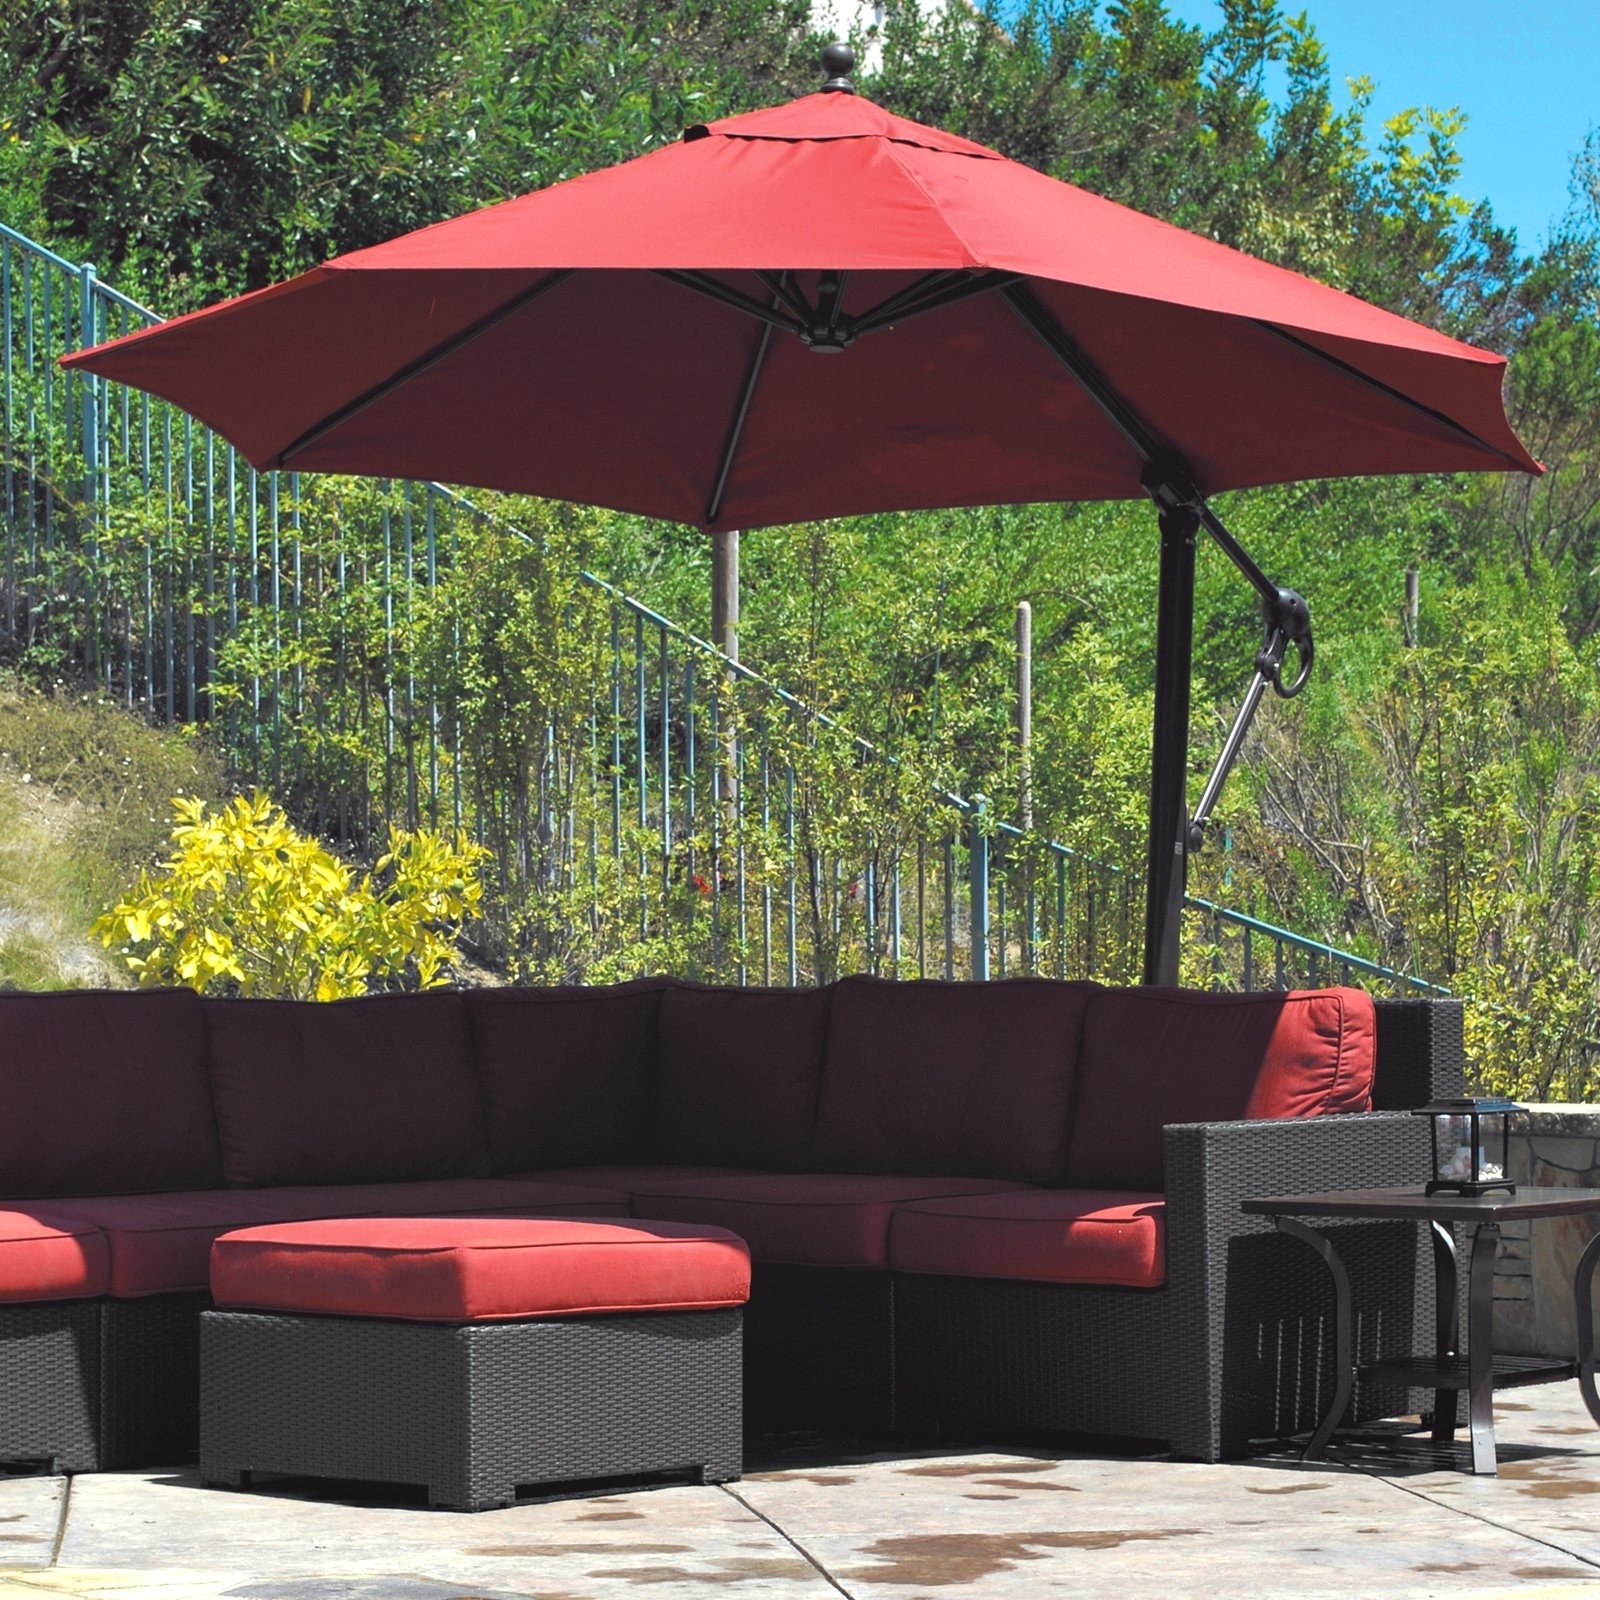 Red Patio Umbrellas Throughout Recent Offset Patio Umbrella For Shade From Sun – Decorifusta (View 17 of 20)